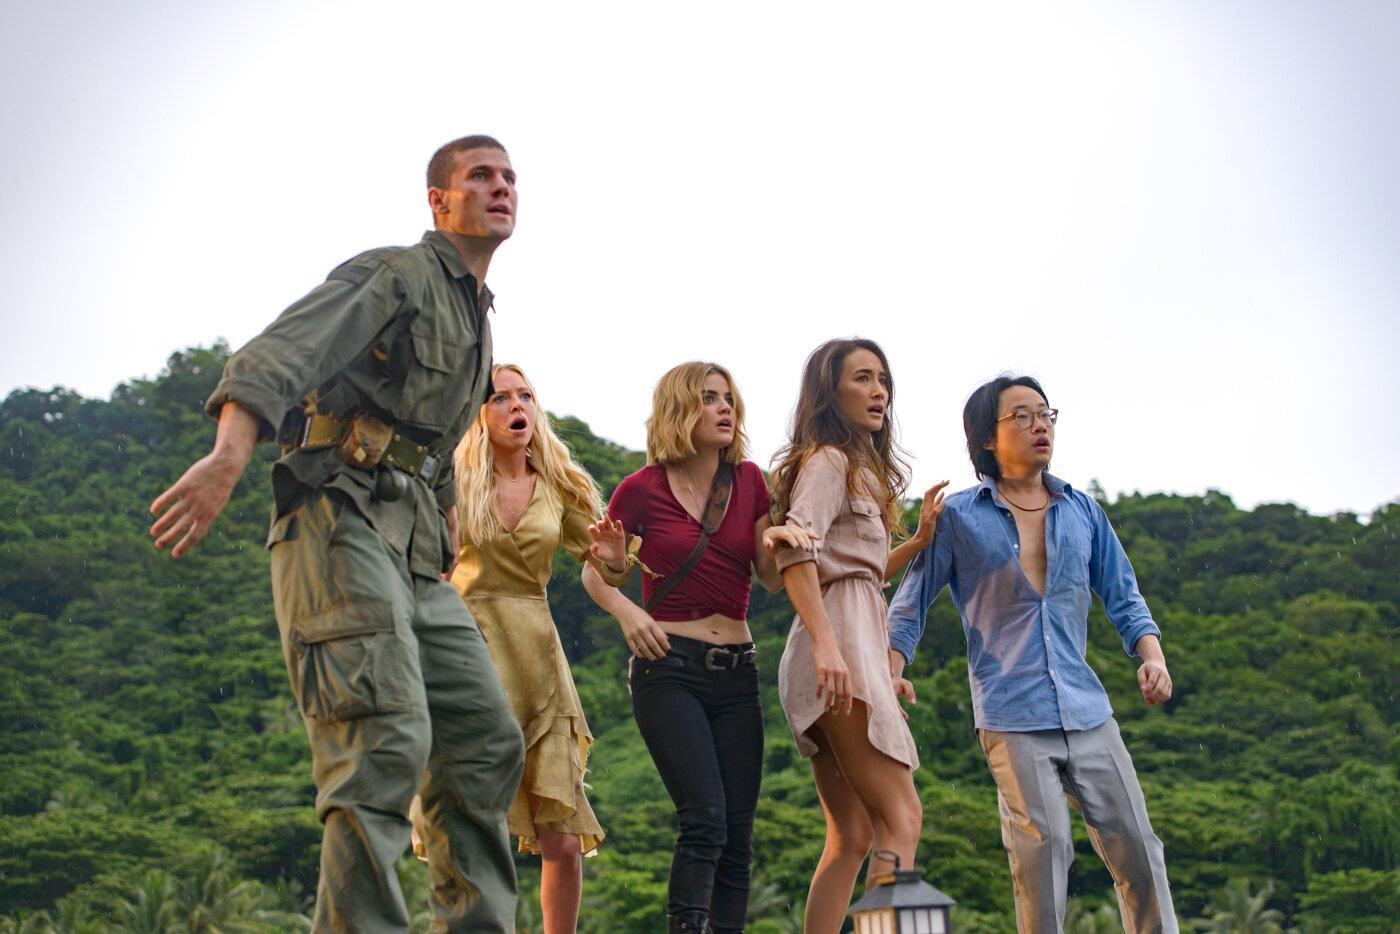 The guests - Austin Stowell, Portia Doubleday, Lucy Hale, Maggie Q and Jimmy O. Yang in Fantasy Island (2020)